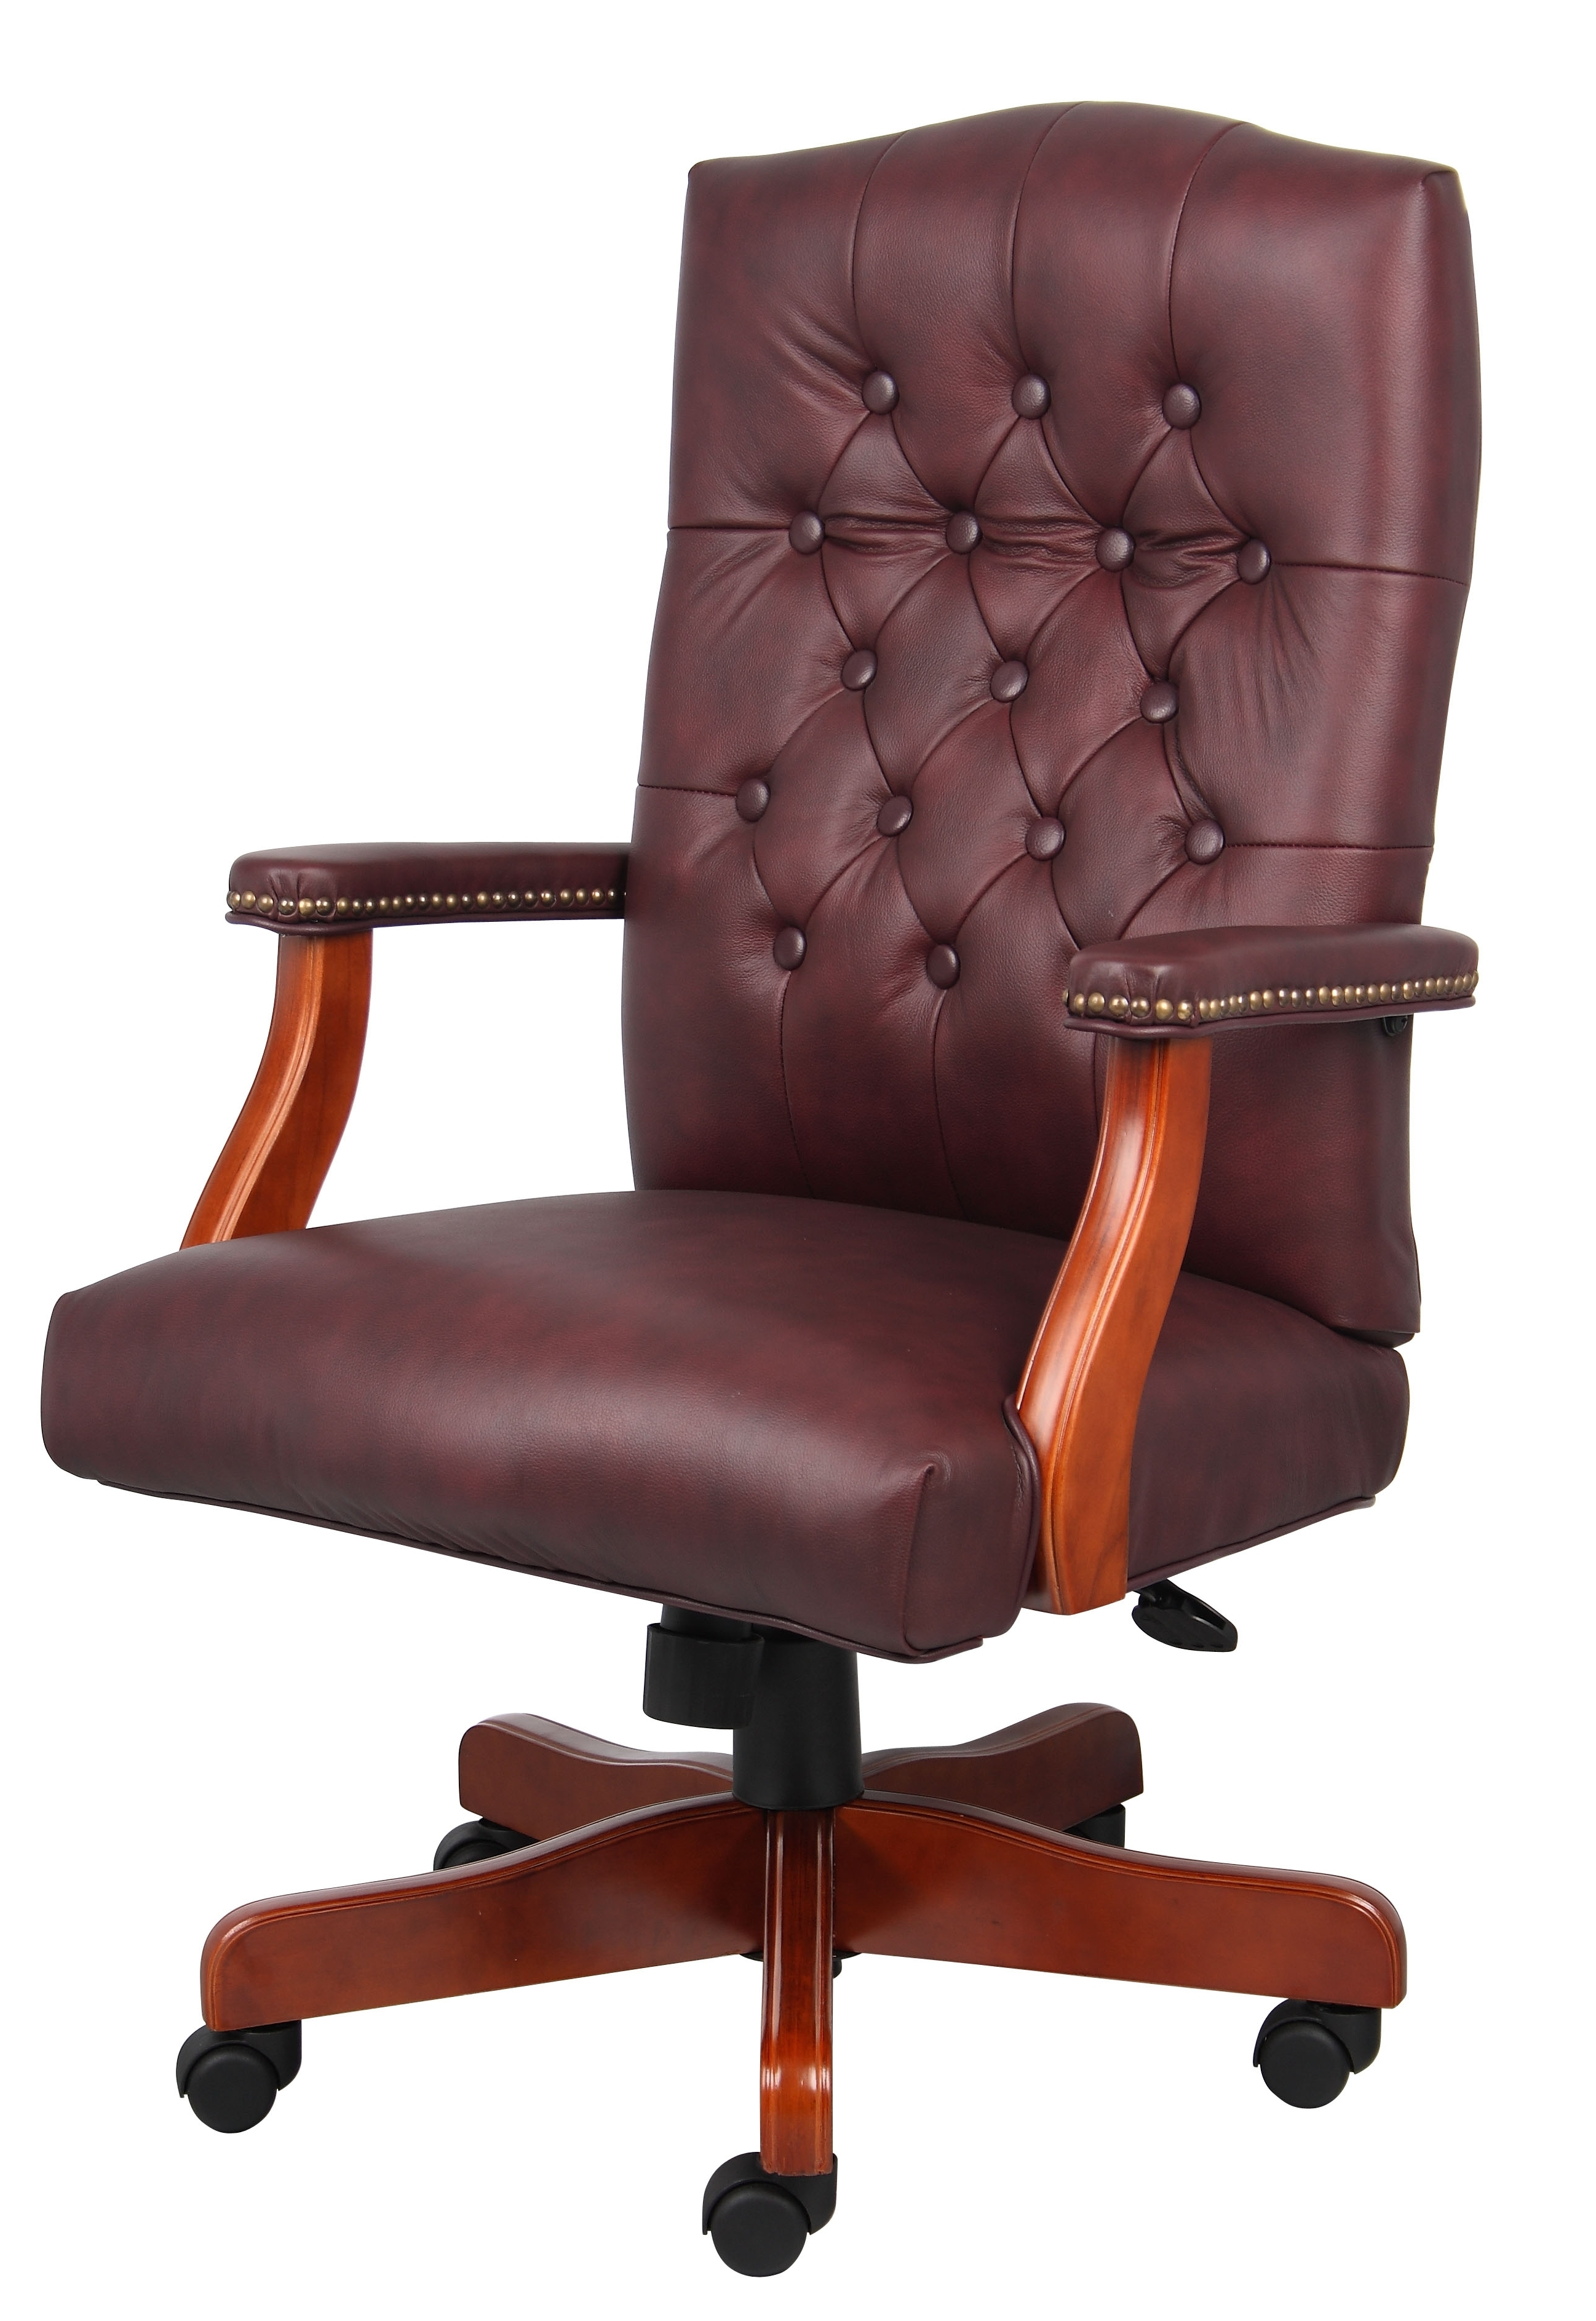 Italian Executive Office Chairs For Preferred Boss Italian Leather Executive Chair (View 10 of 20)